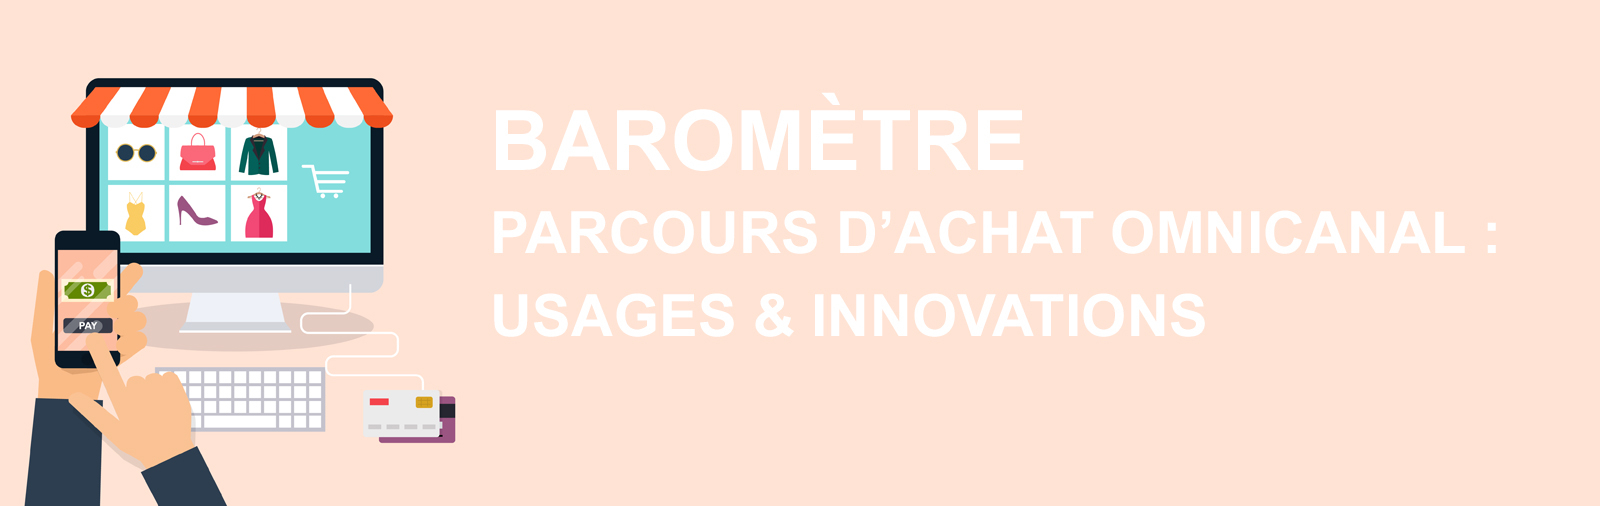 [Baromètre] Parcours d'achat Omnicanal : Usages & Innovations